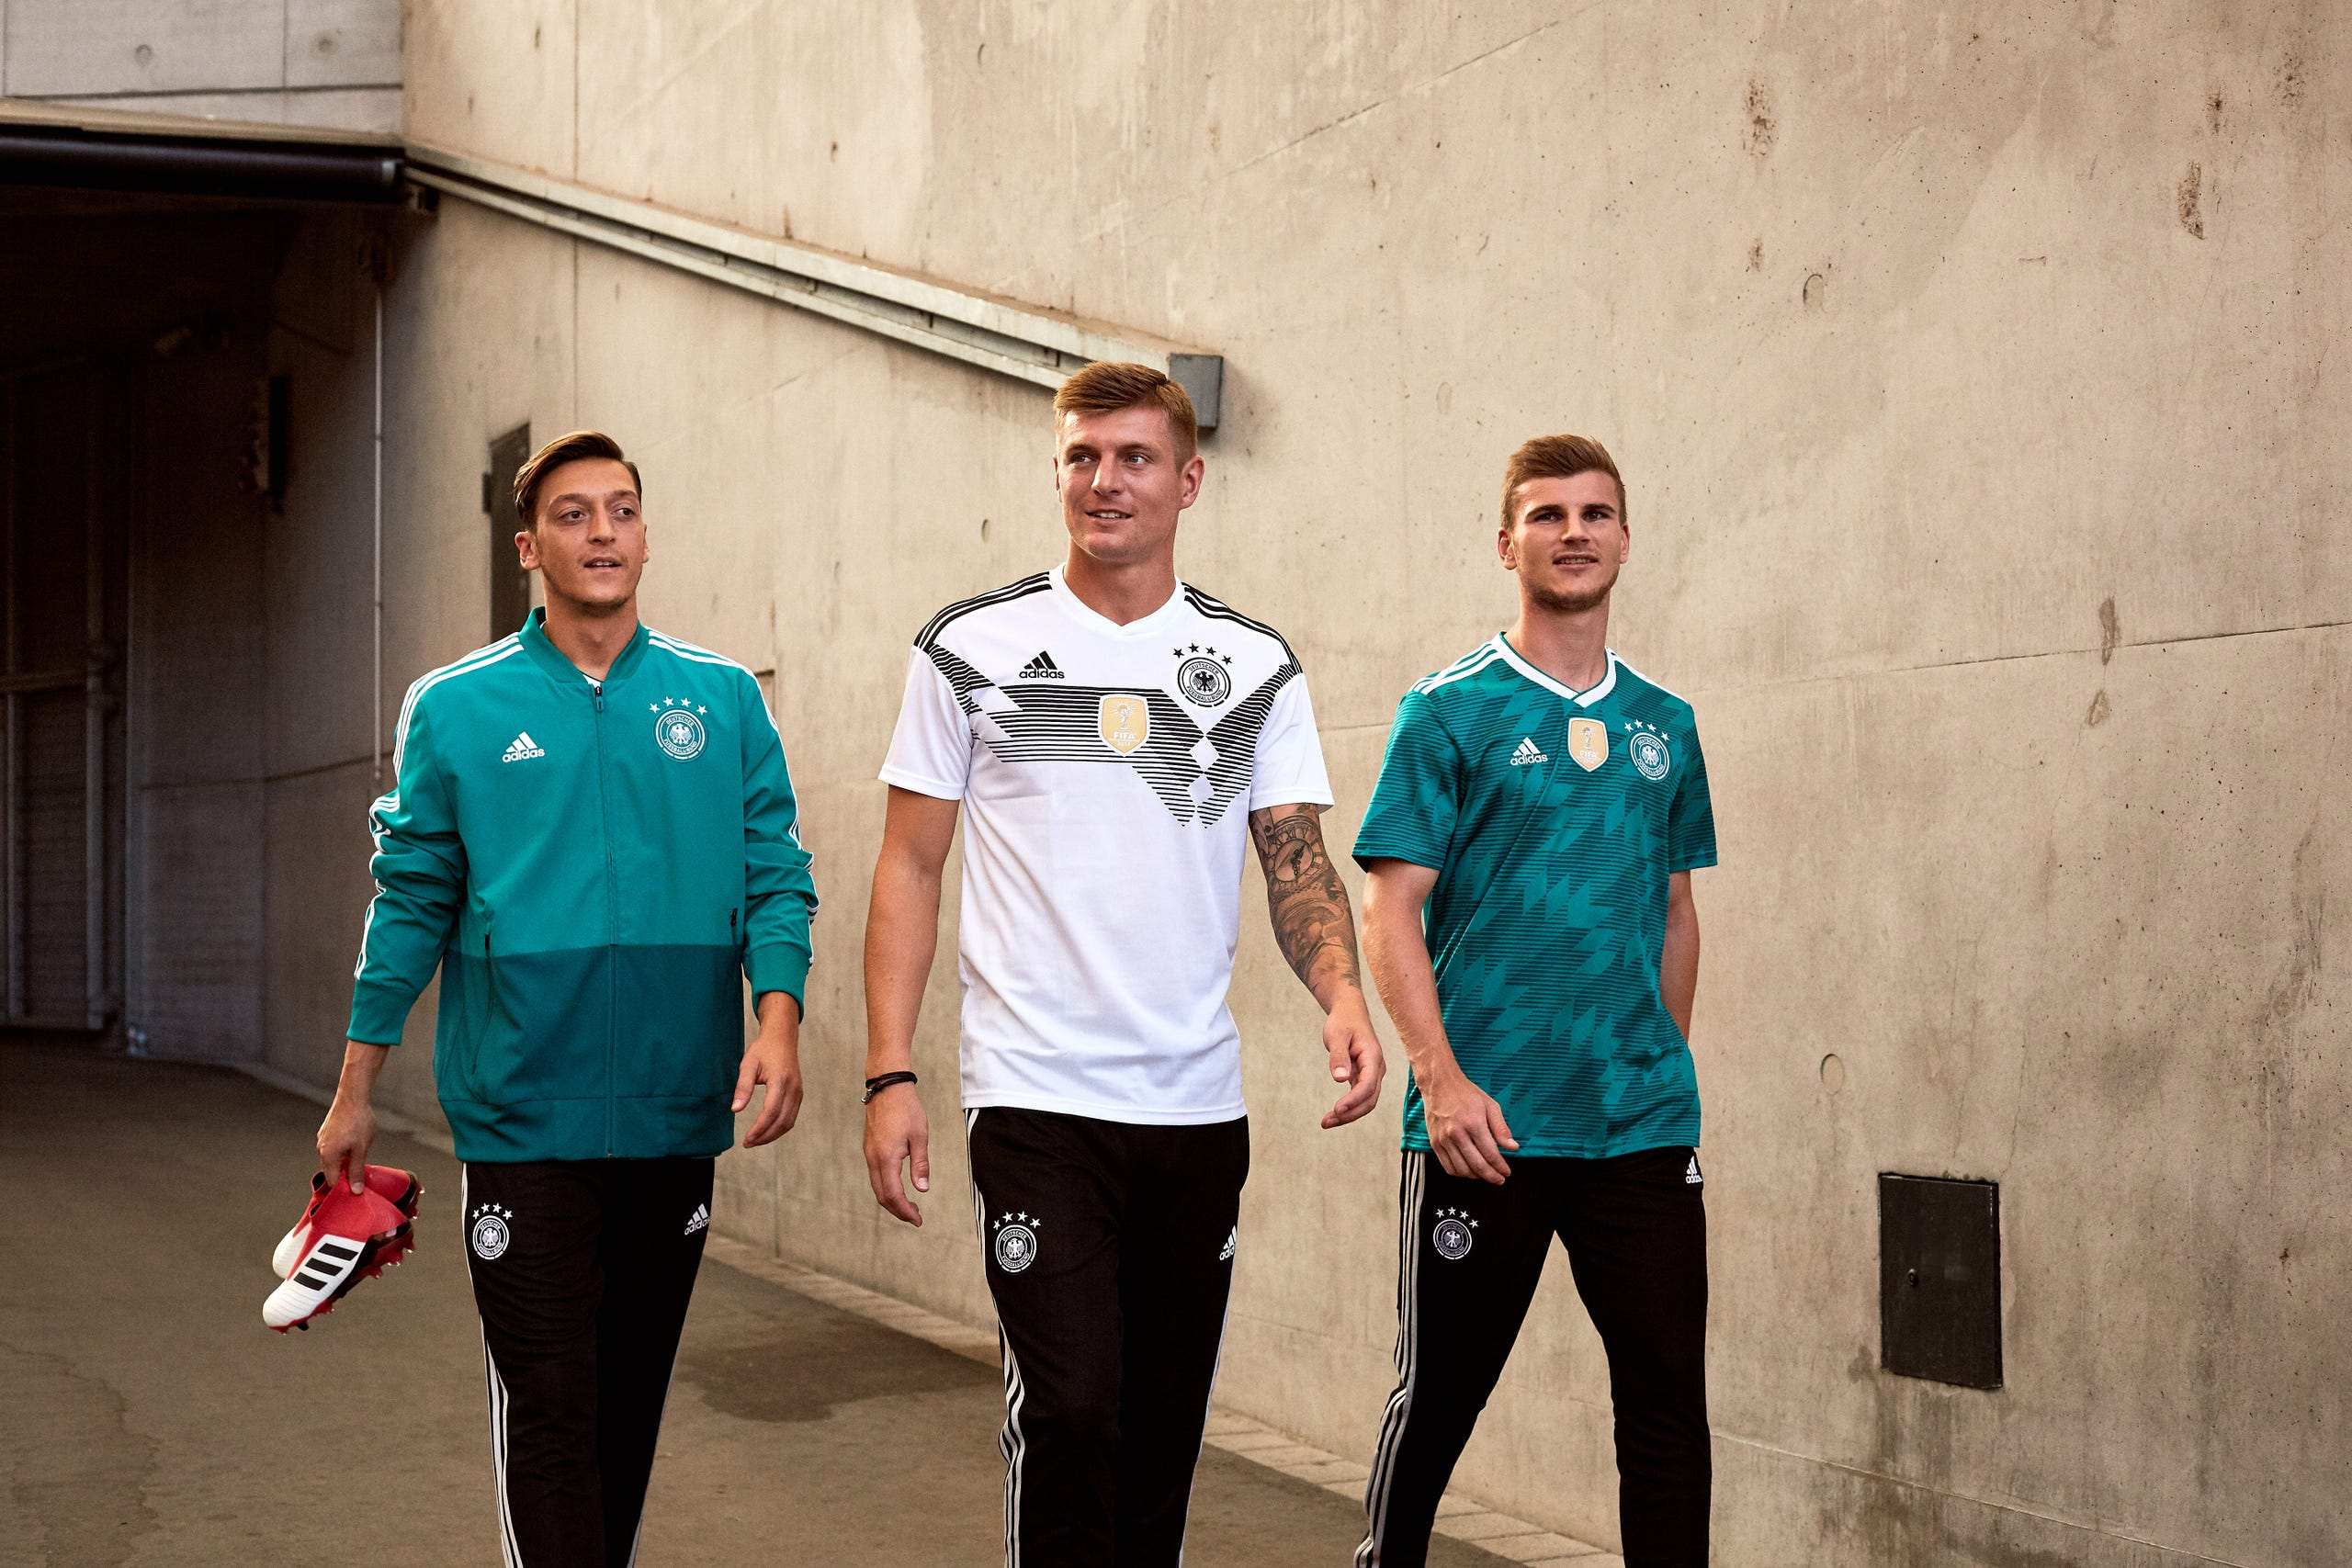 a3c0b8730 Germany s away jersey is inspired by the green 1990 World Cup away jersey  worn in the